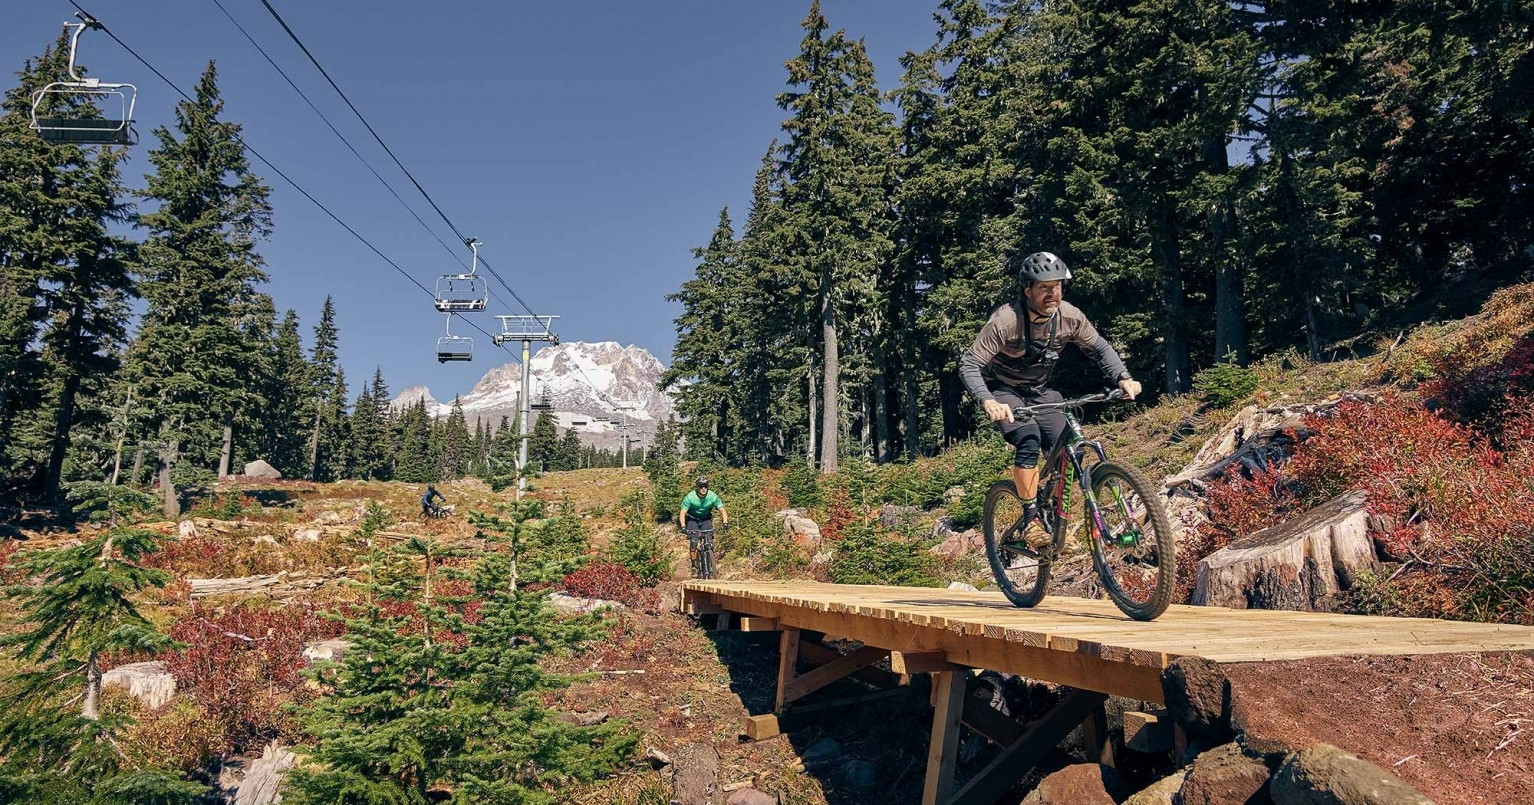 TIMBERLINE BIKE PARK